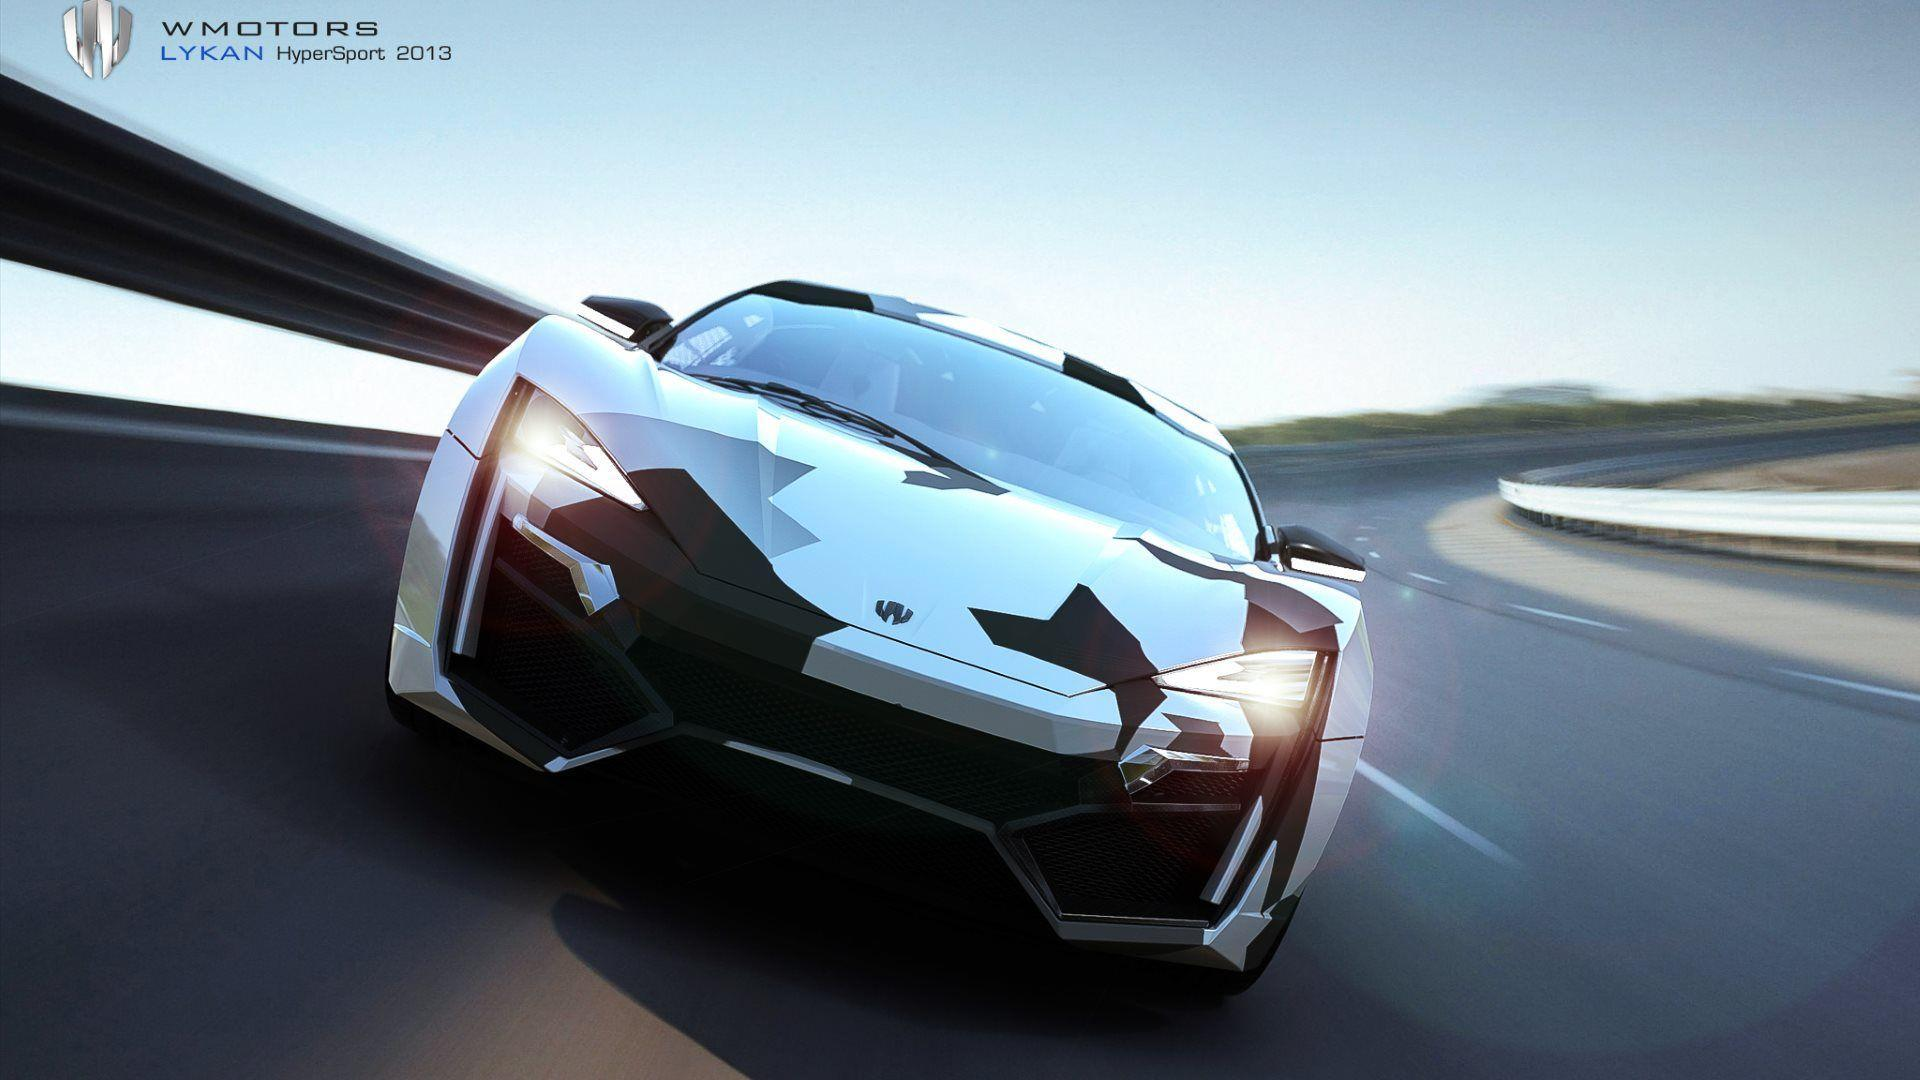 Lycan Hypersport Wallpapers WallsKid